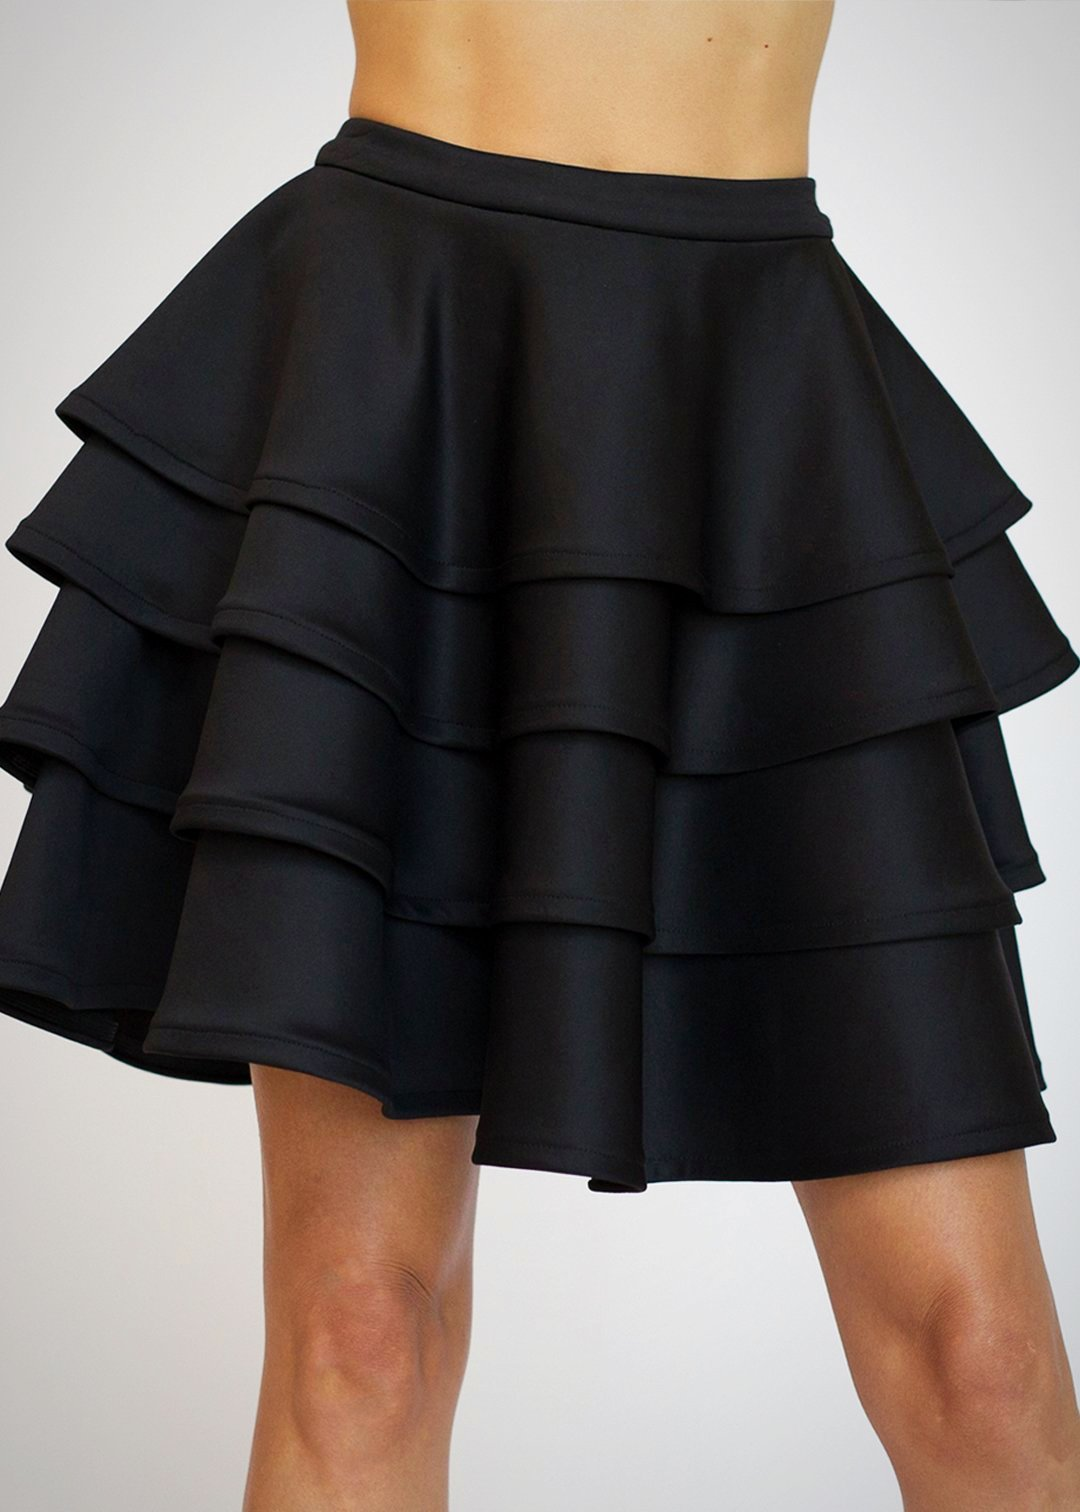 Olgita Skirt Black